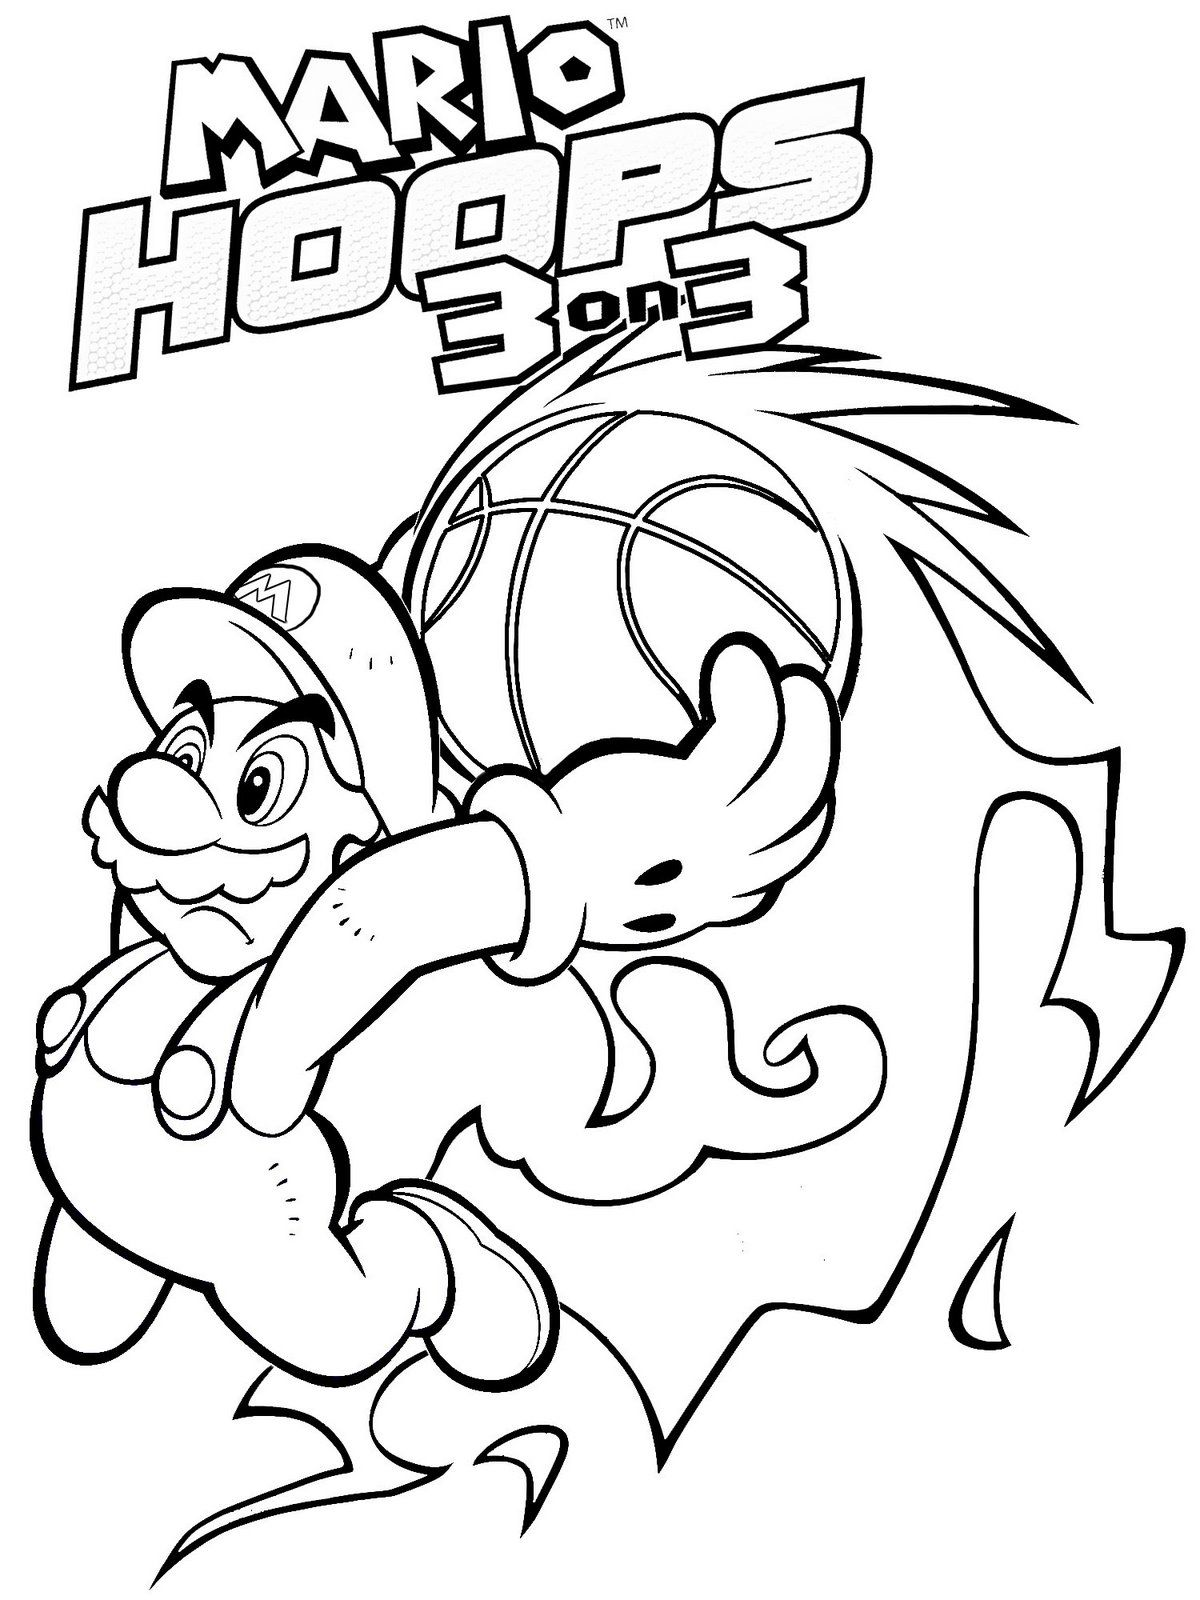 17 Pics Of Mario Bros Printable Coloring Pages - Super Mario Bros ...